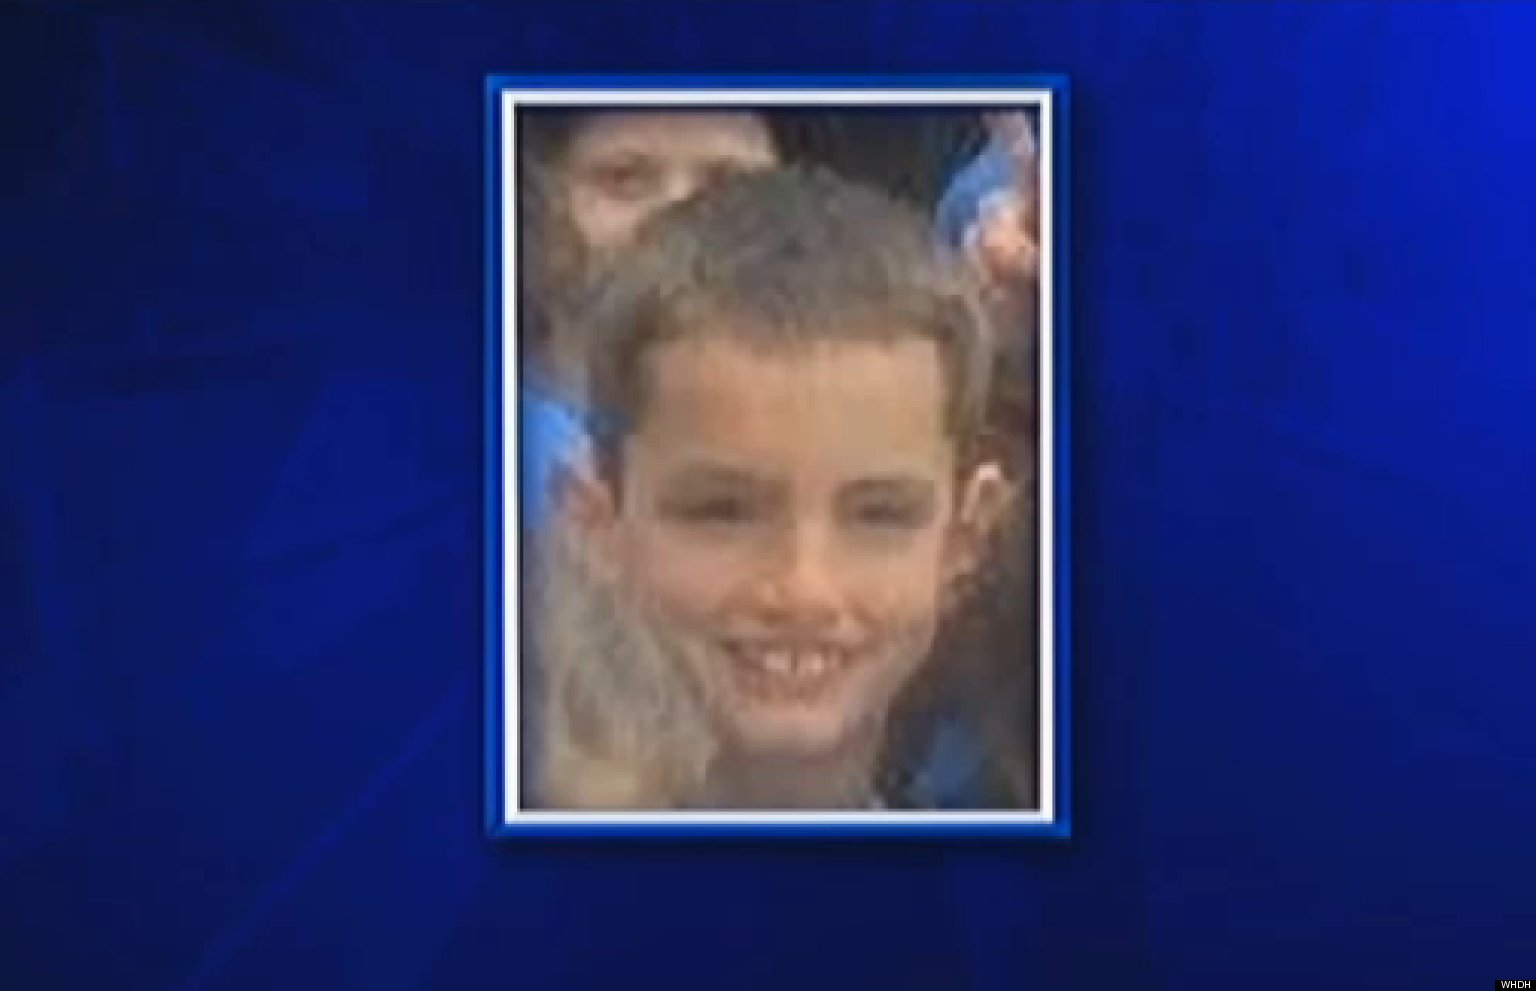 8-Year-Old Boy Dies In Boston Marathon Blasts